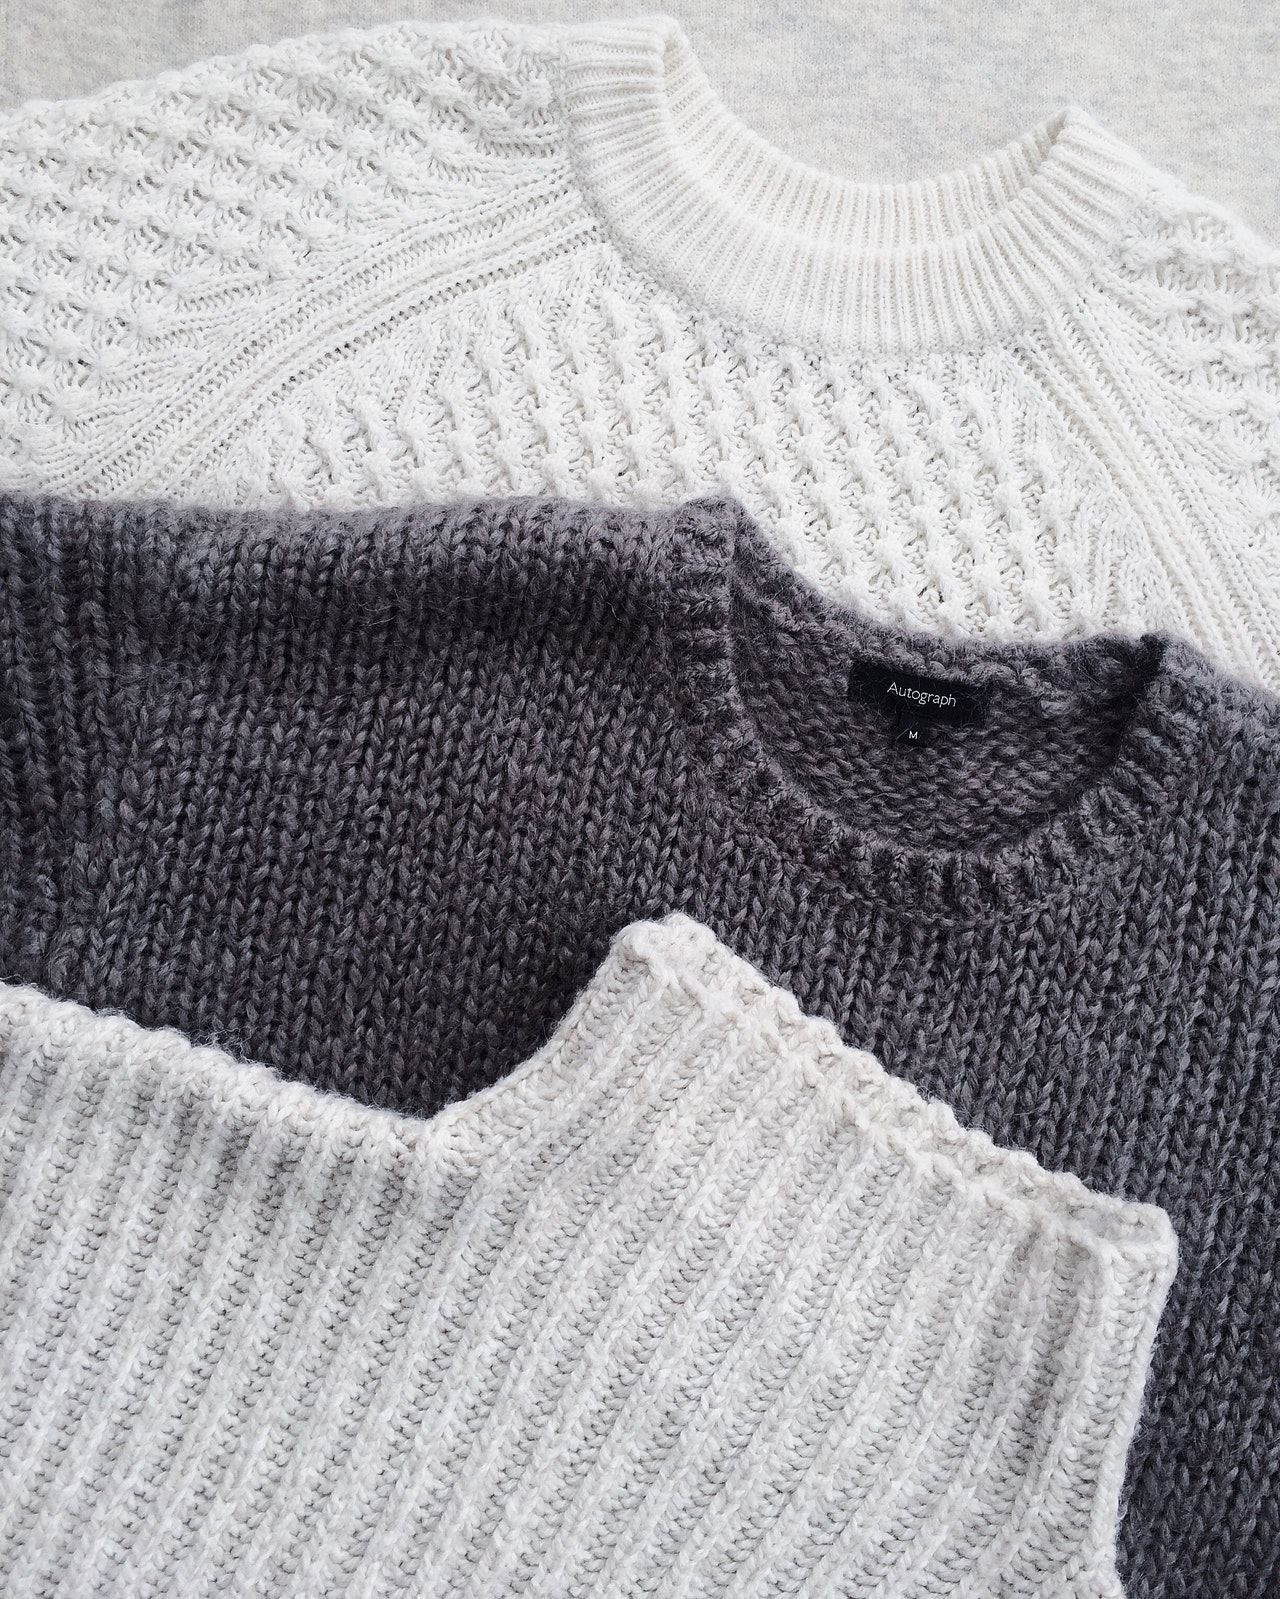 close-up-photo-of-three-sweatshirts-1030946_CompQual80.jpg